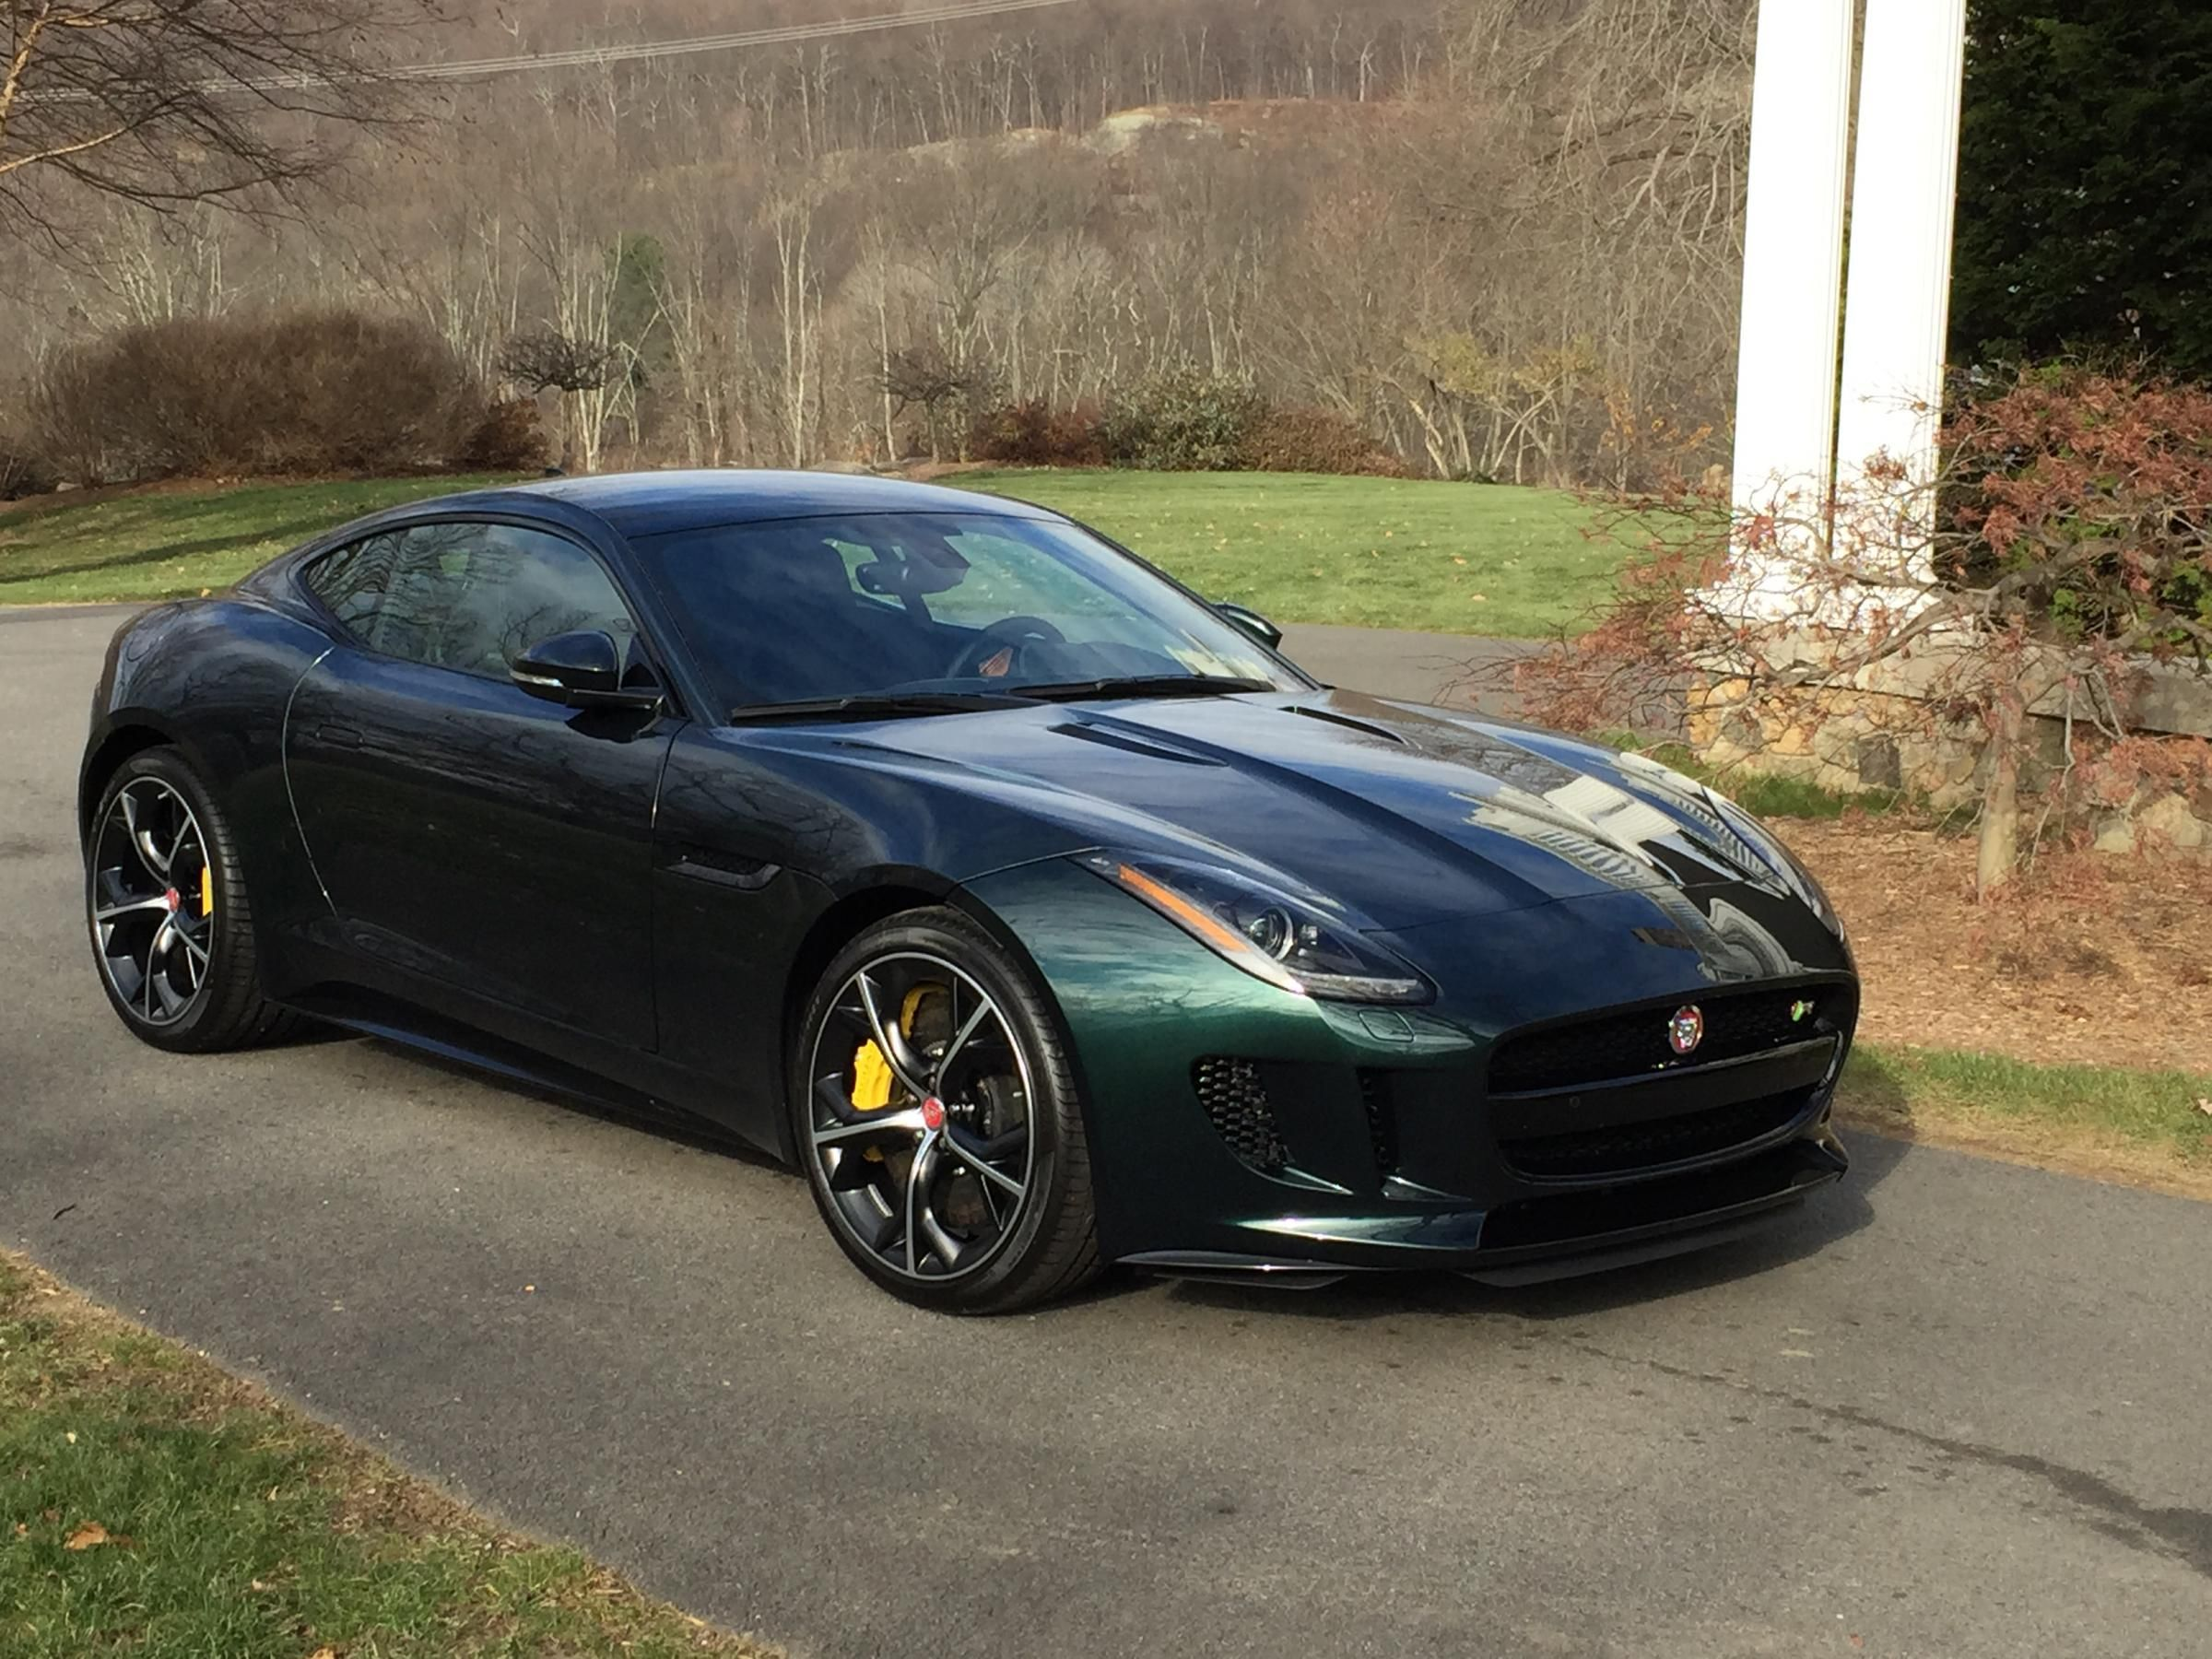 Jaguar F Type R British Racing Green Jaguar F Type British Racing Green Jaguar Car